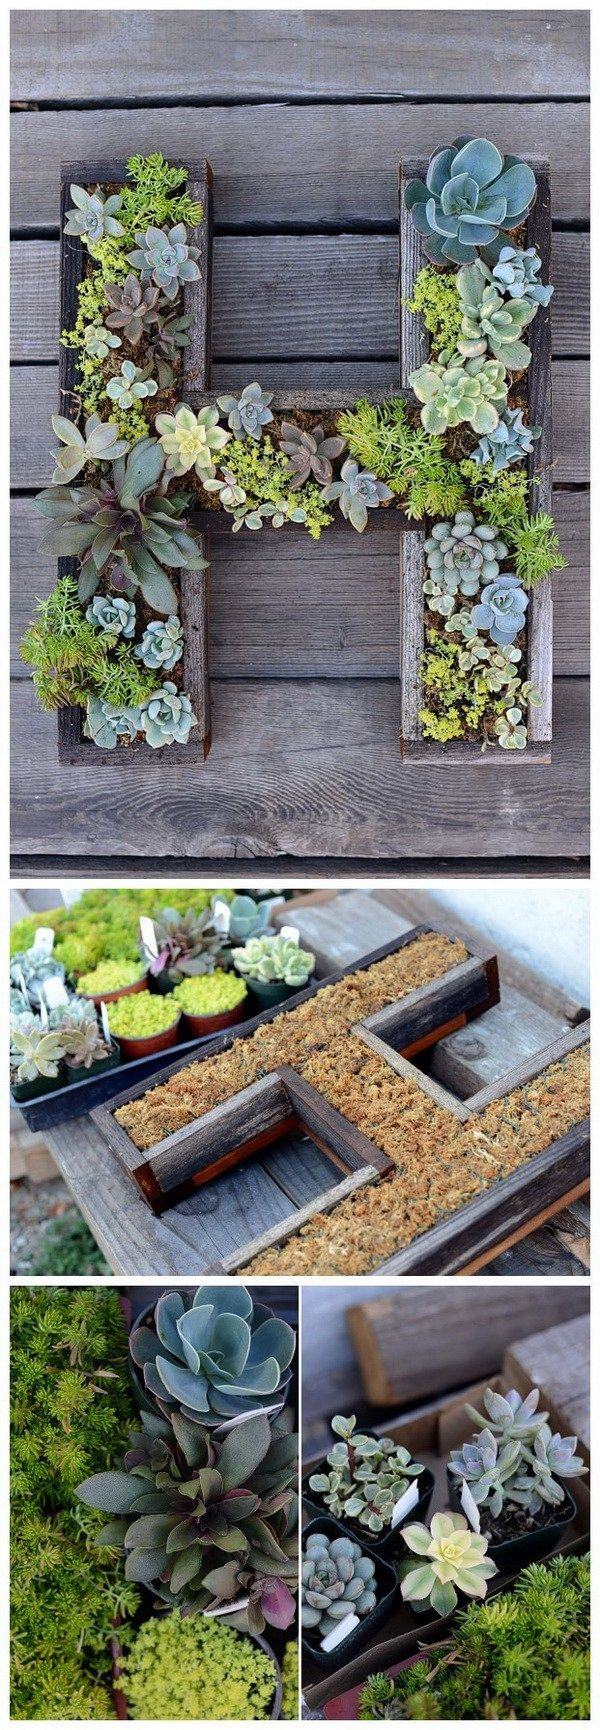 DIY Wall-Mounted Succulent Letter. Make this wall-mounted succulent letter planter and bring in some greenery to your home.